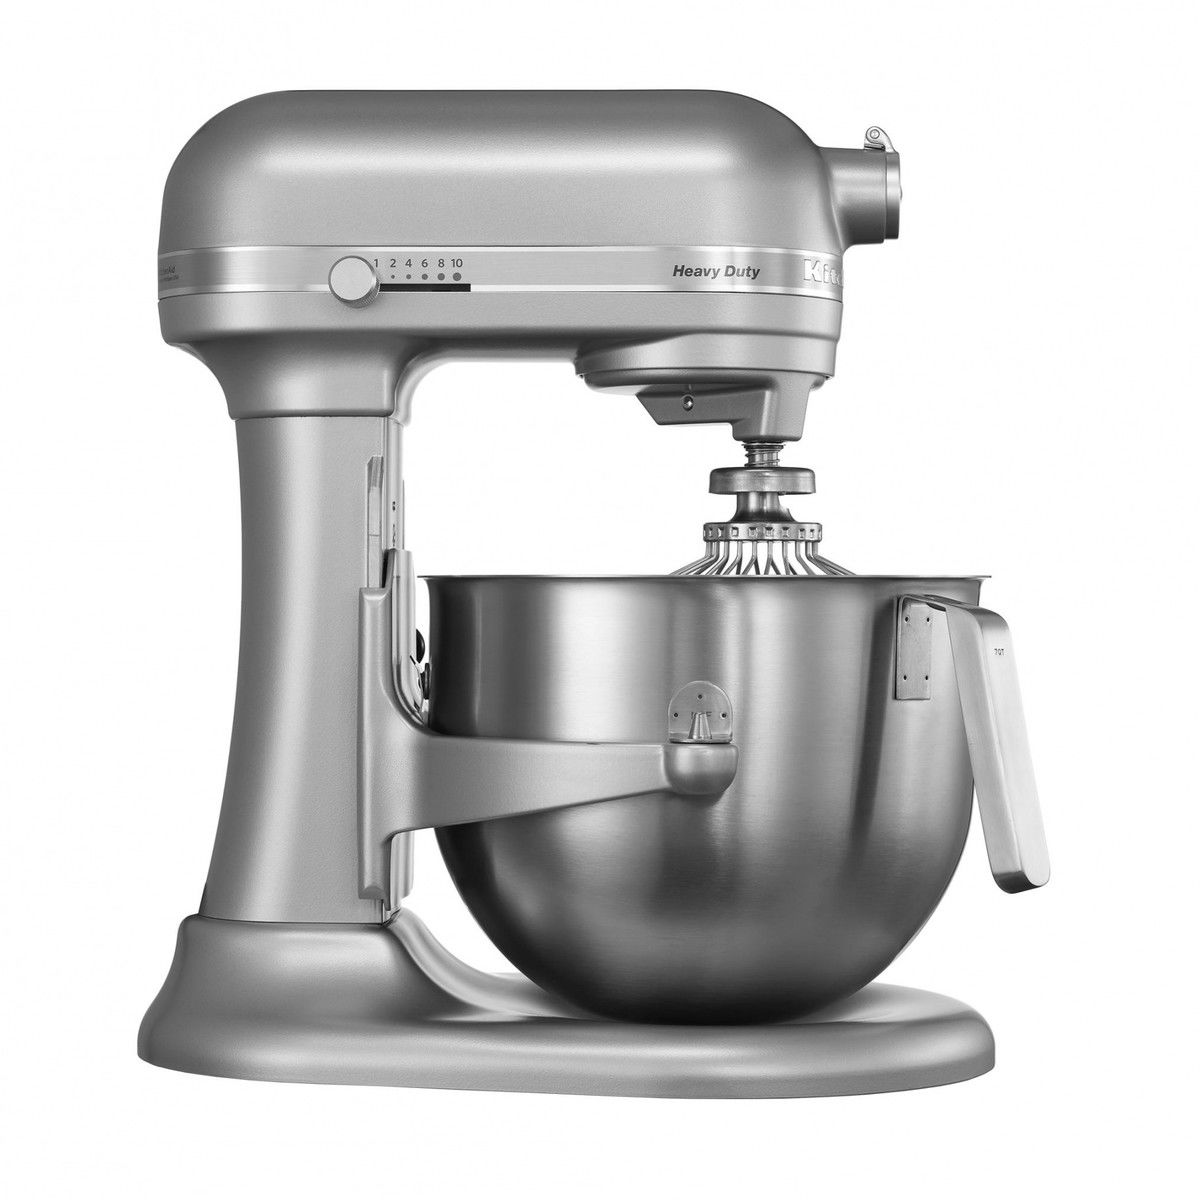 Robot kitchenaid heavy duty